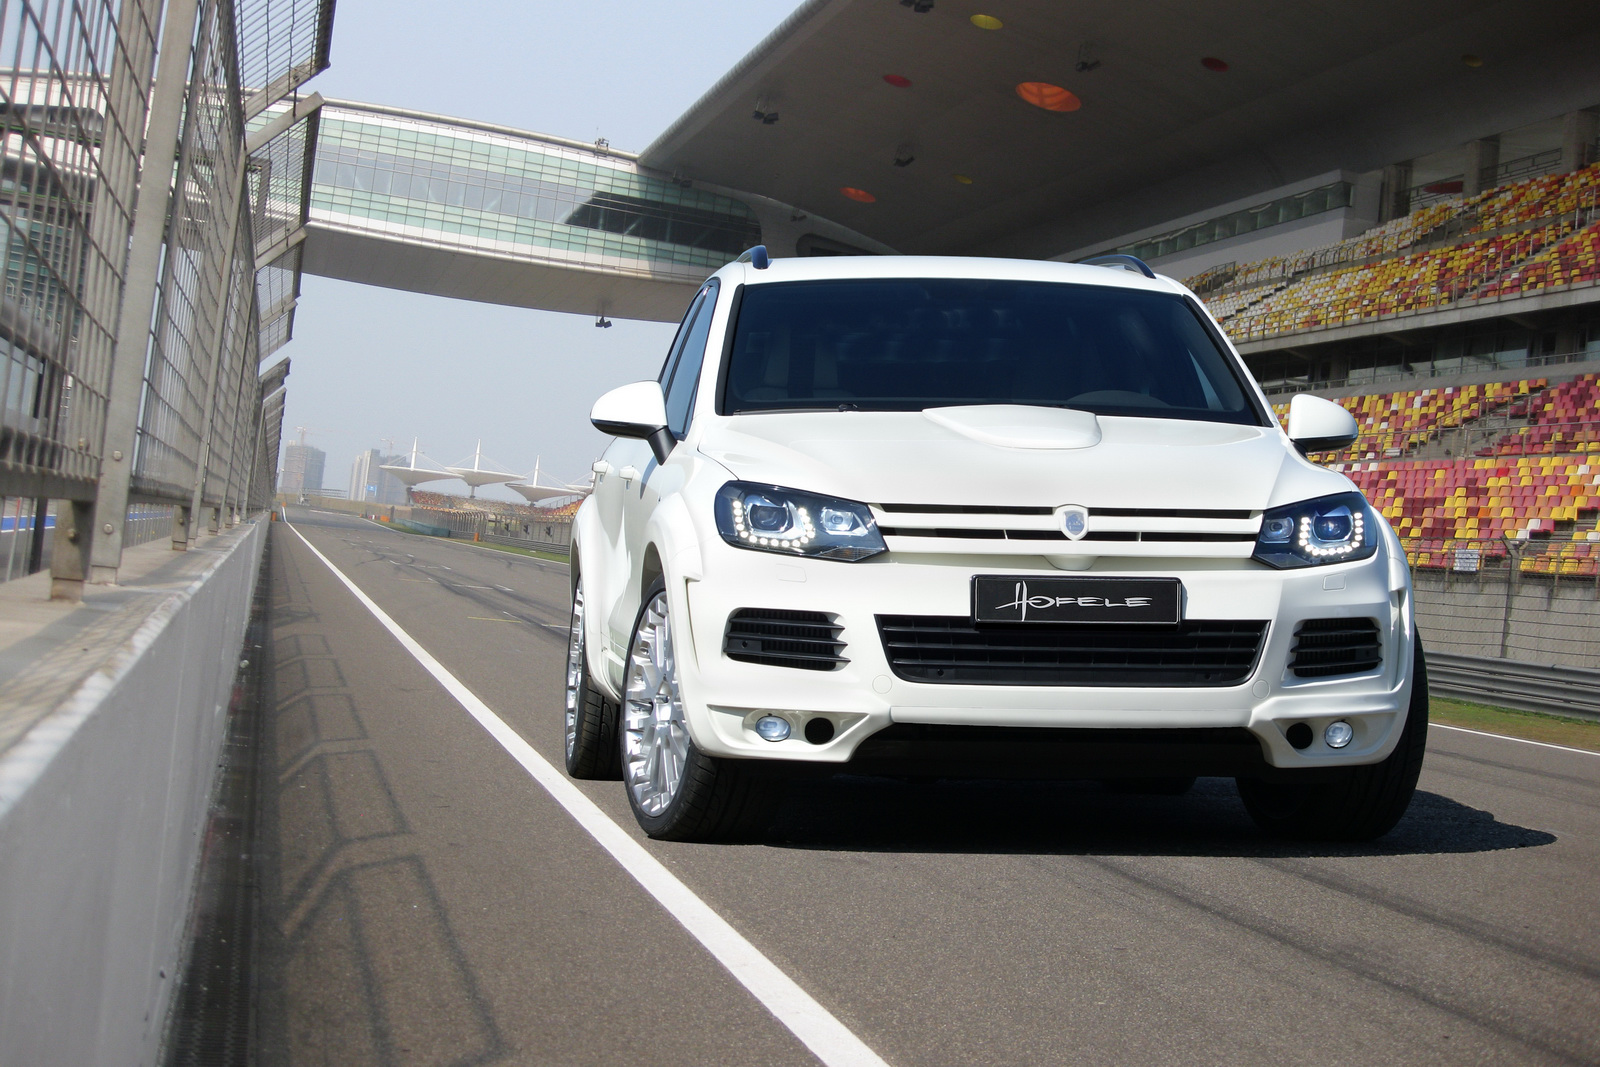 Hofele Design Unveils Vw Touareg Royal Gt 470 Autoevolution